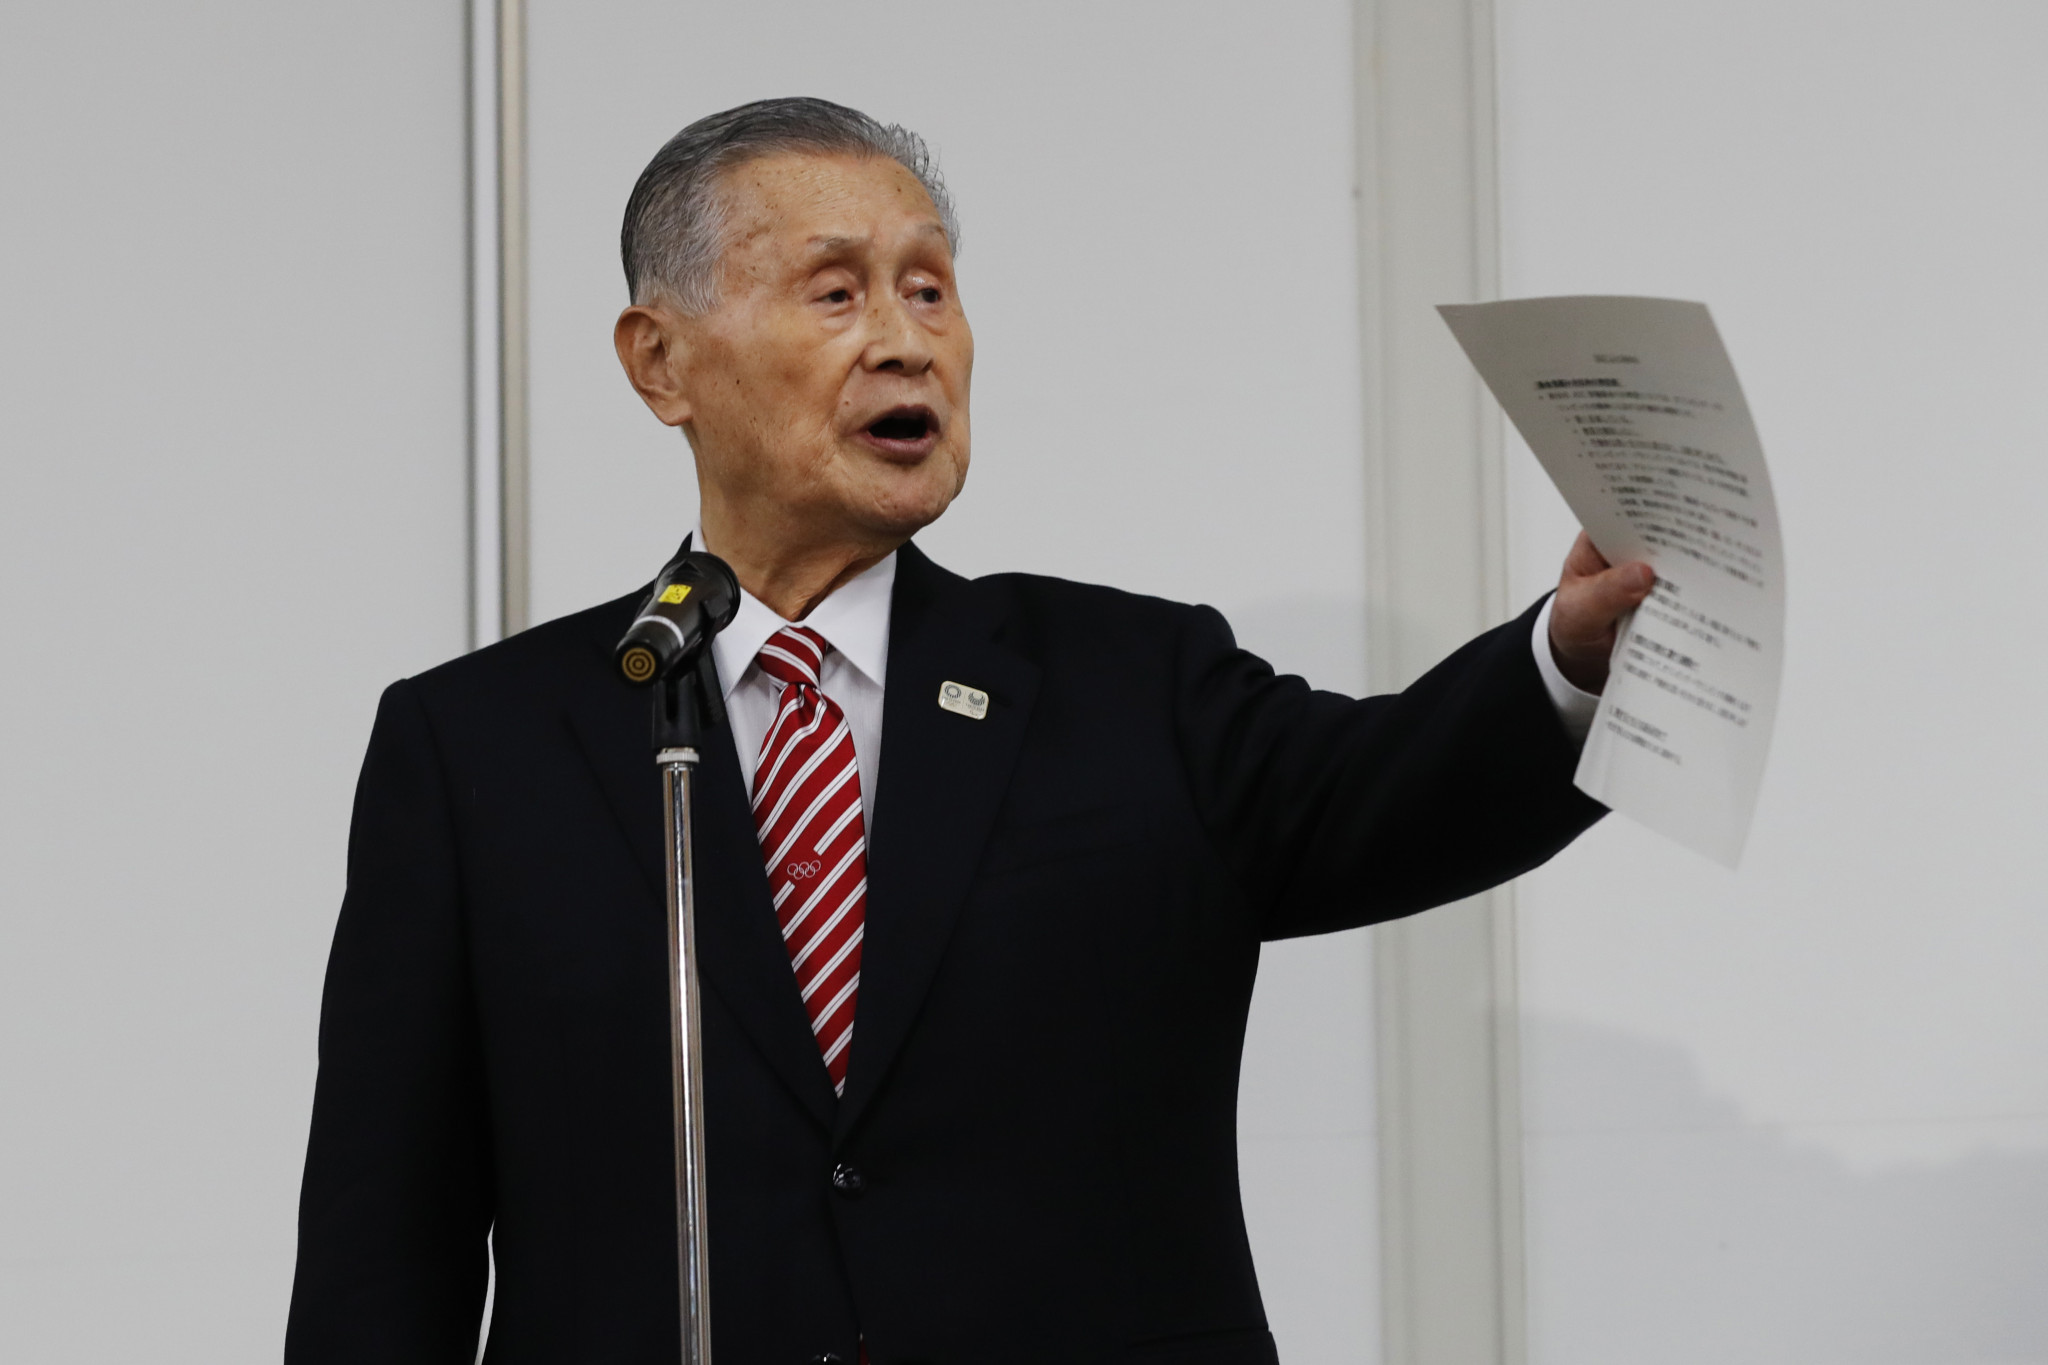 Tokyo 2020 President Yoshirō Mori apologised for his comments during a media conference ©Getty Images